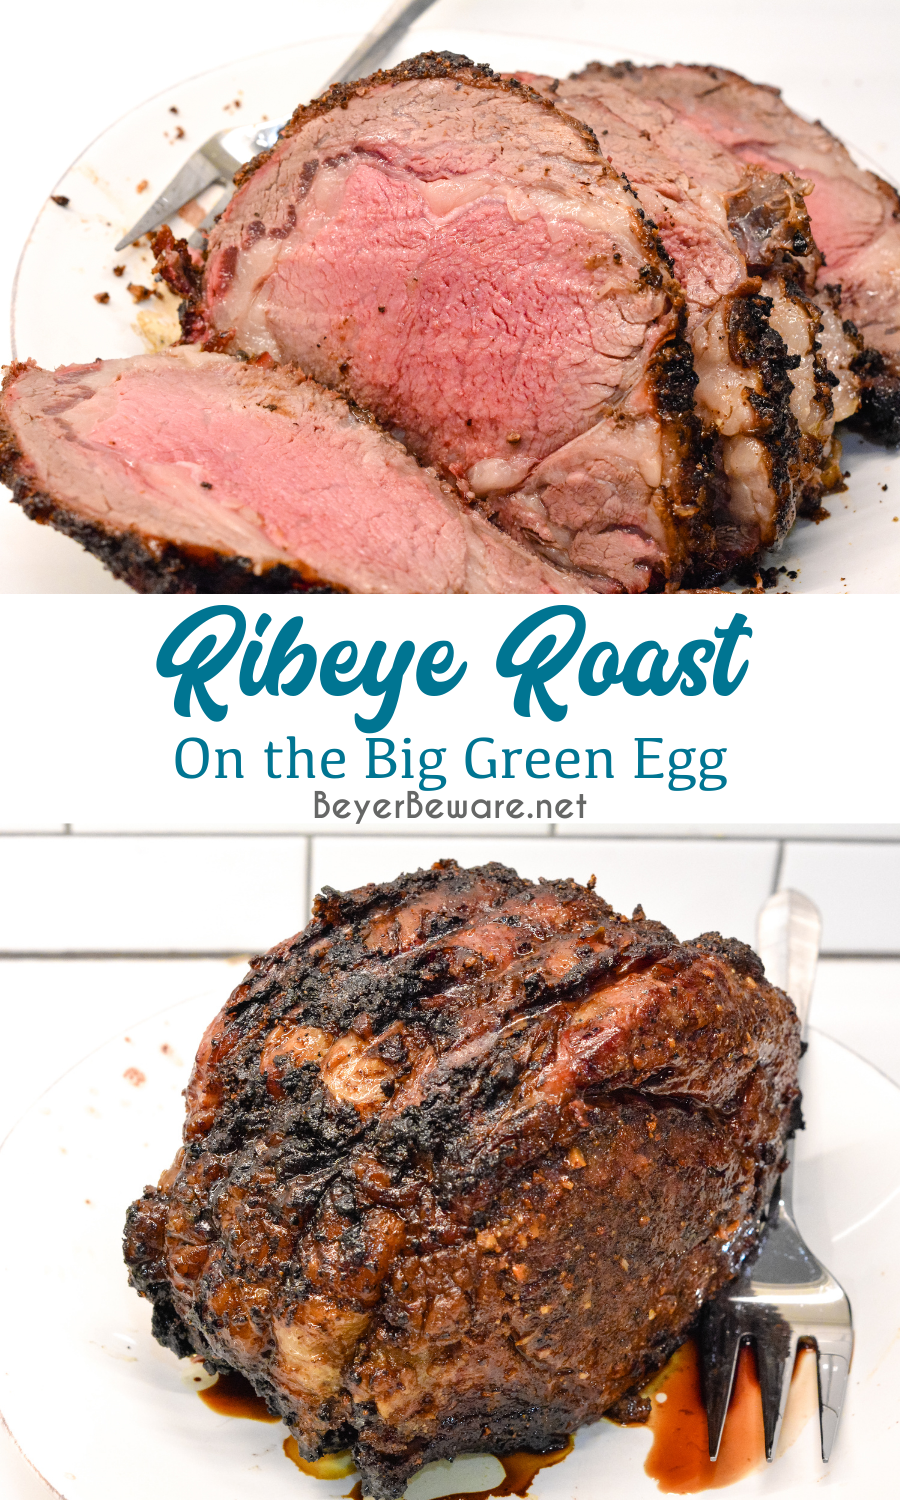 Knowing how to make a ribeye roast can mean a perfect beef holiday dinner entree that is perfectly cooked to a medium rare with a garlic and pepper crust all done on the Big Green Egg grill or the oven.